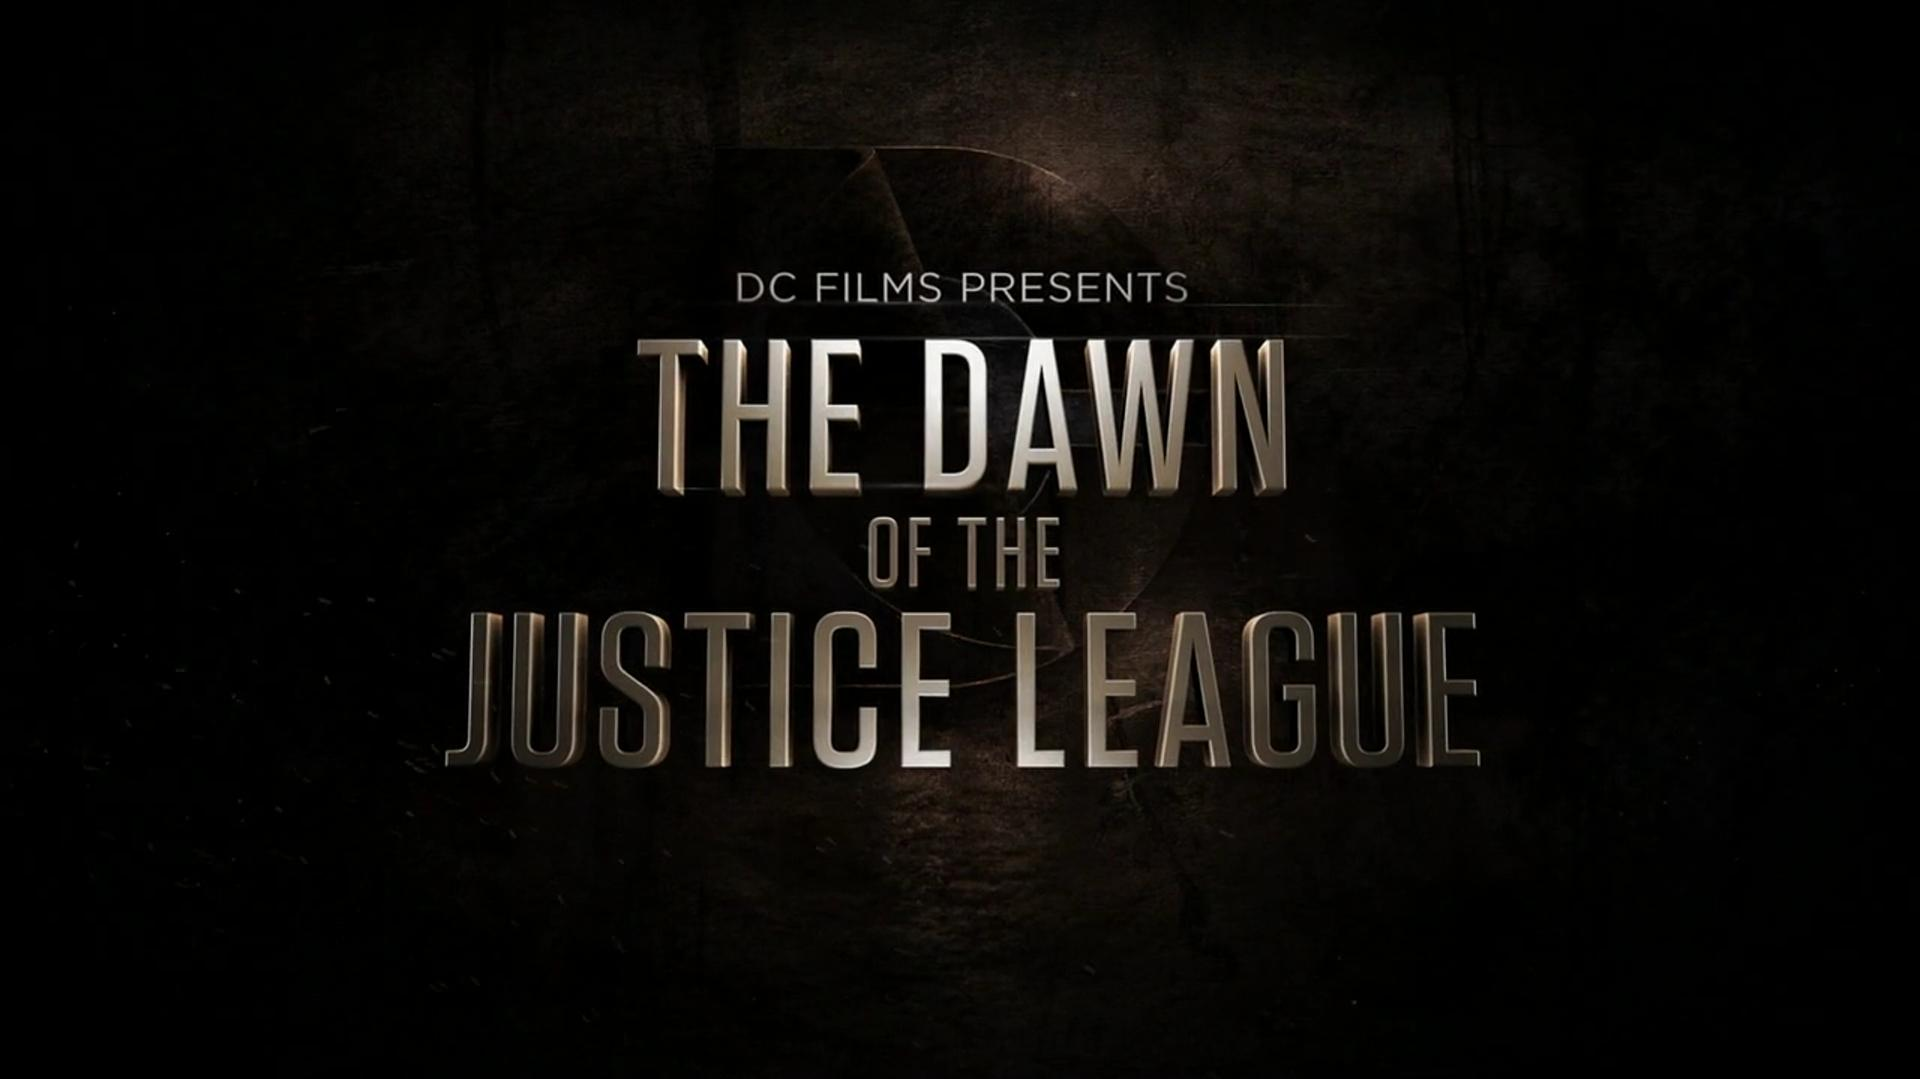 DC Films Presents The Dawn of the Justice League